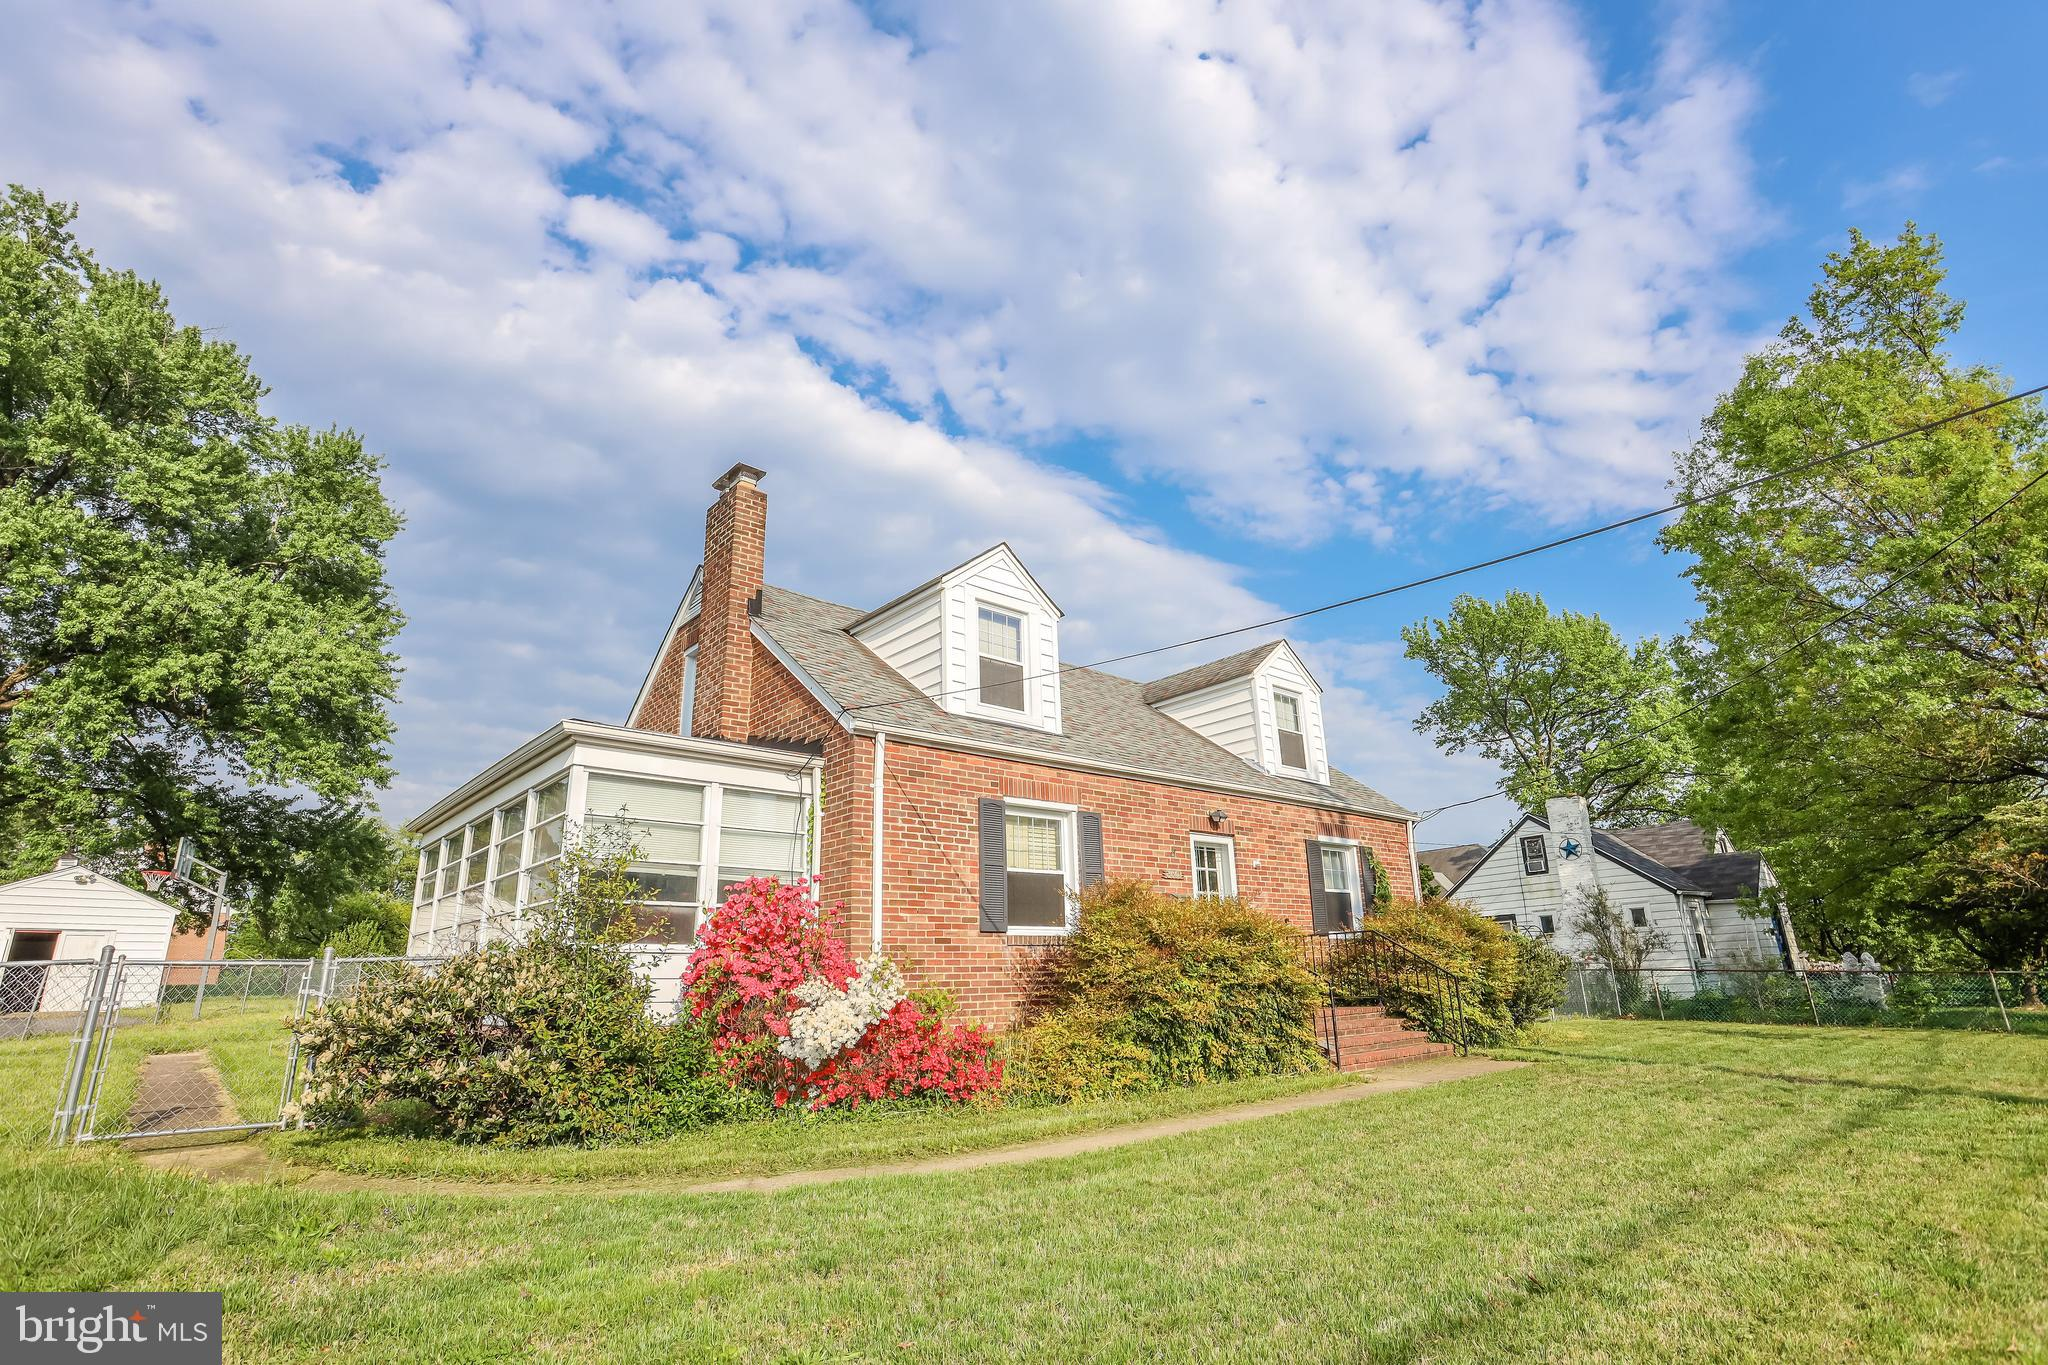 Perfect starter home for anybody working in the area! Easy access to I-495 and Gallows road. Home can use some work, and is priced accordingly.